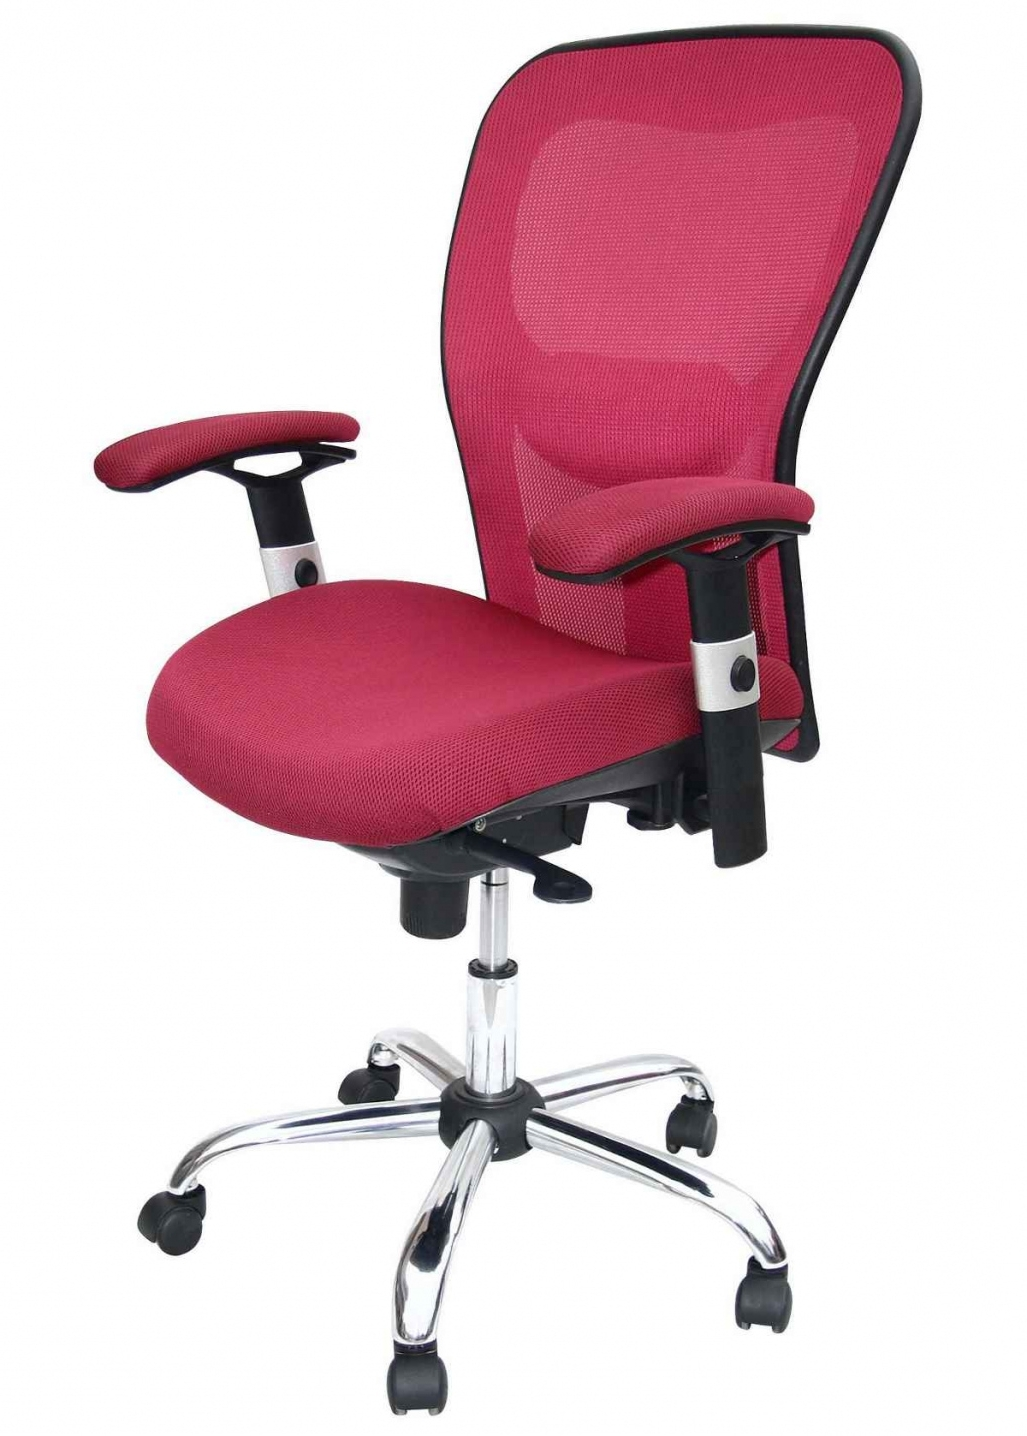 Pink Executive Office Chairs For Favorite Pink Executive Office Chair – Space Saving Desk Ideas (View 8 of 20)